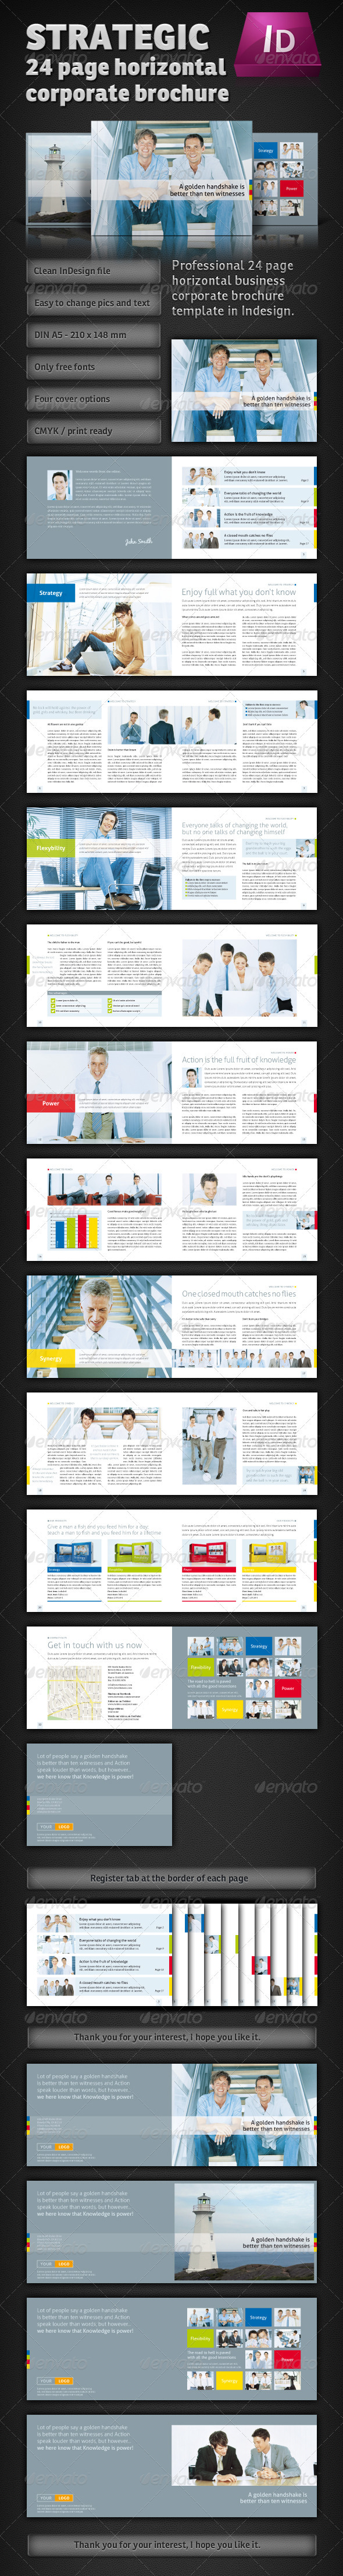 horizontal brochure template - indesign strategic plan template